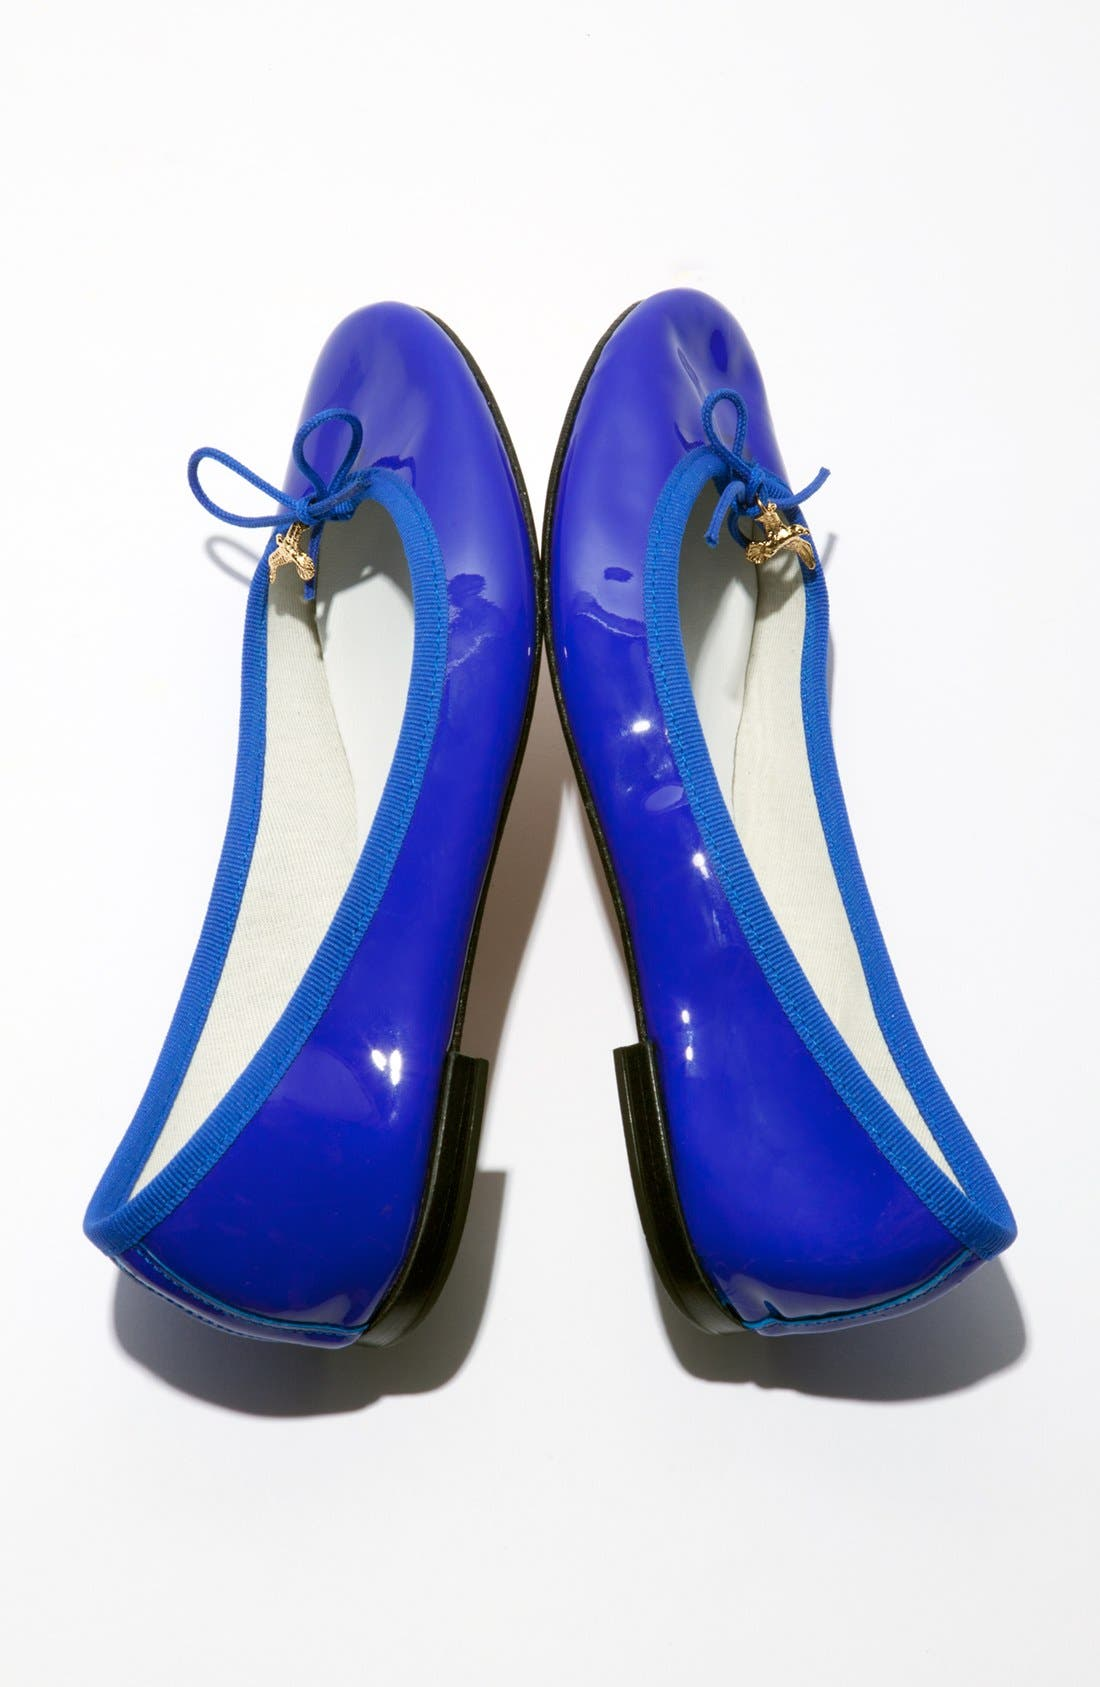 Alternate Image 2 Selected - Repetto 'Cendrillon' Patent Leather Ballet Flat